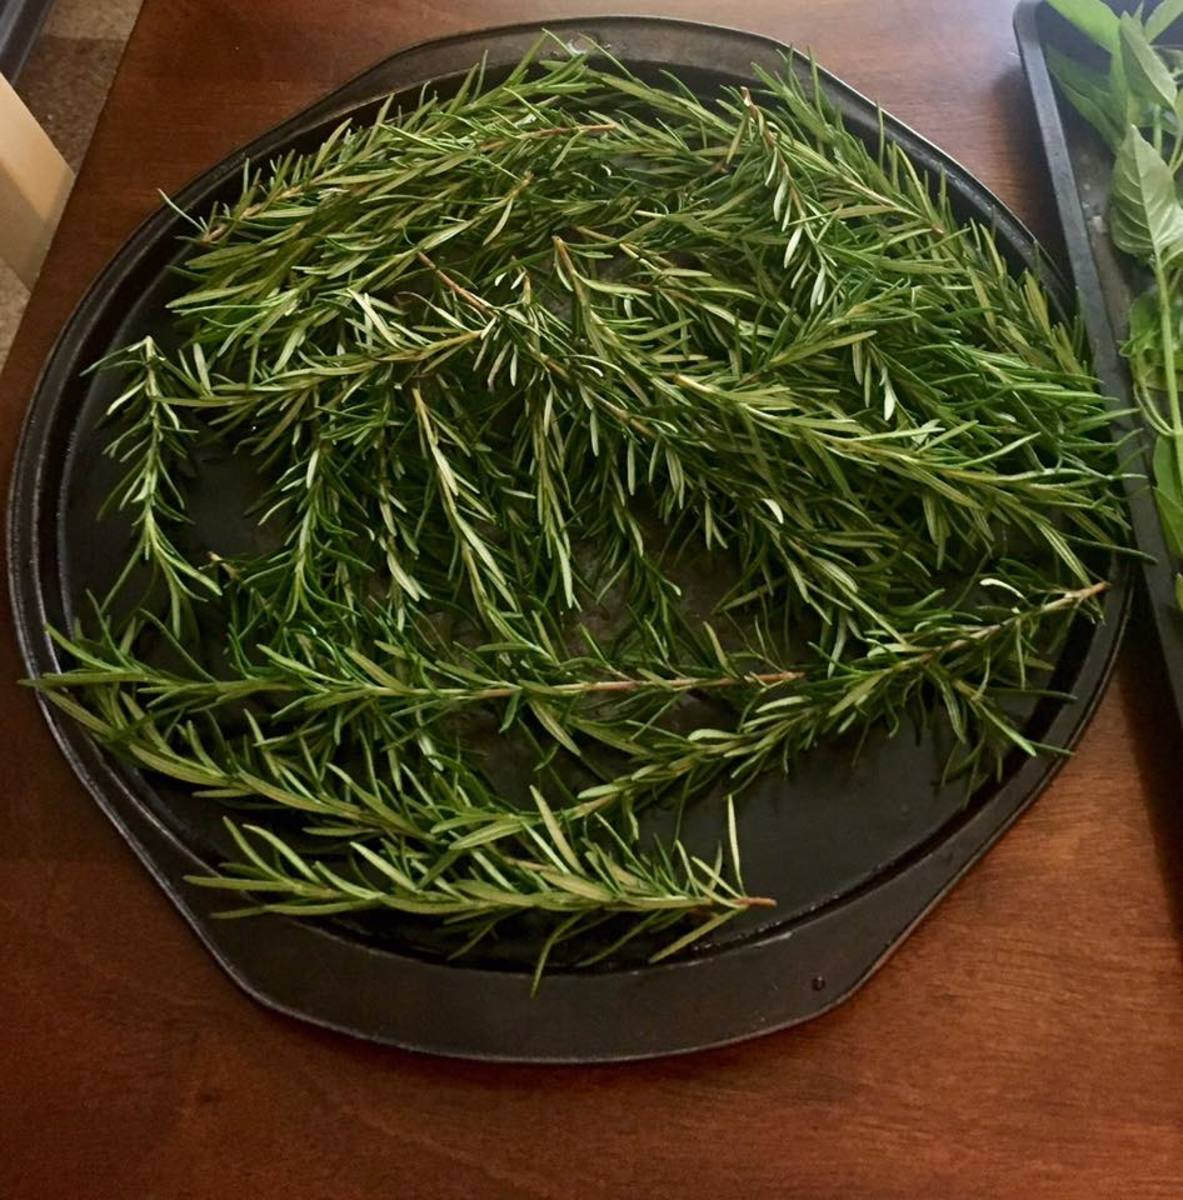 Rosemary can be air-dried or oven-dried—rosemary oven drying prep pictured above.